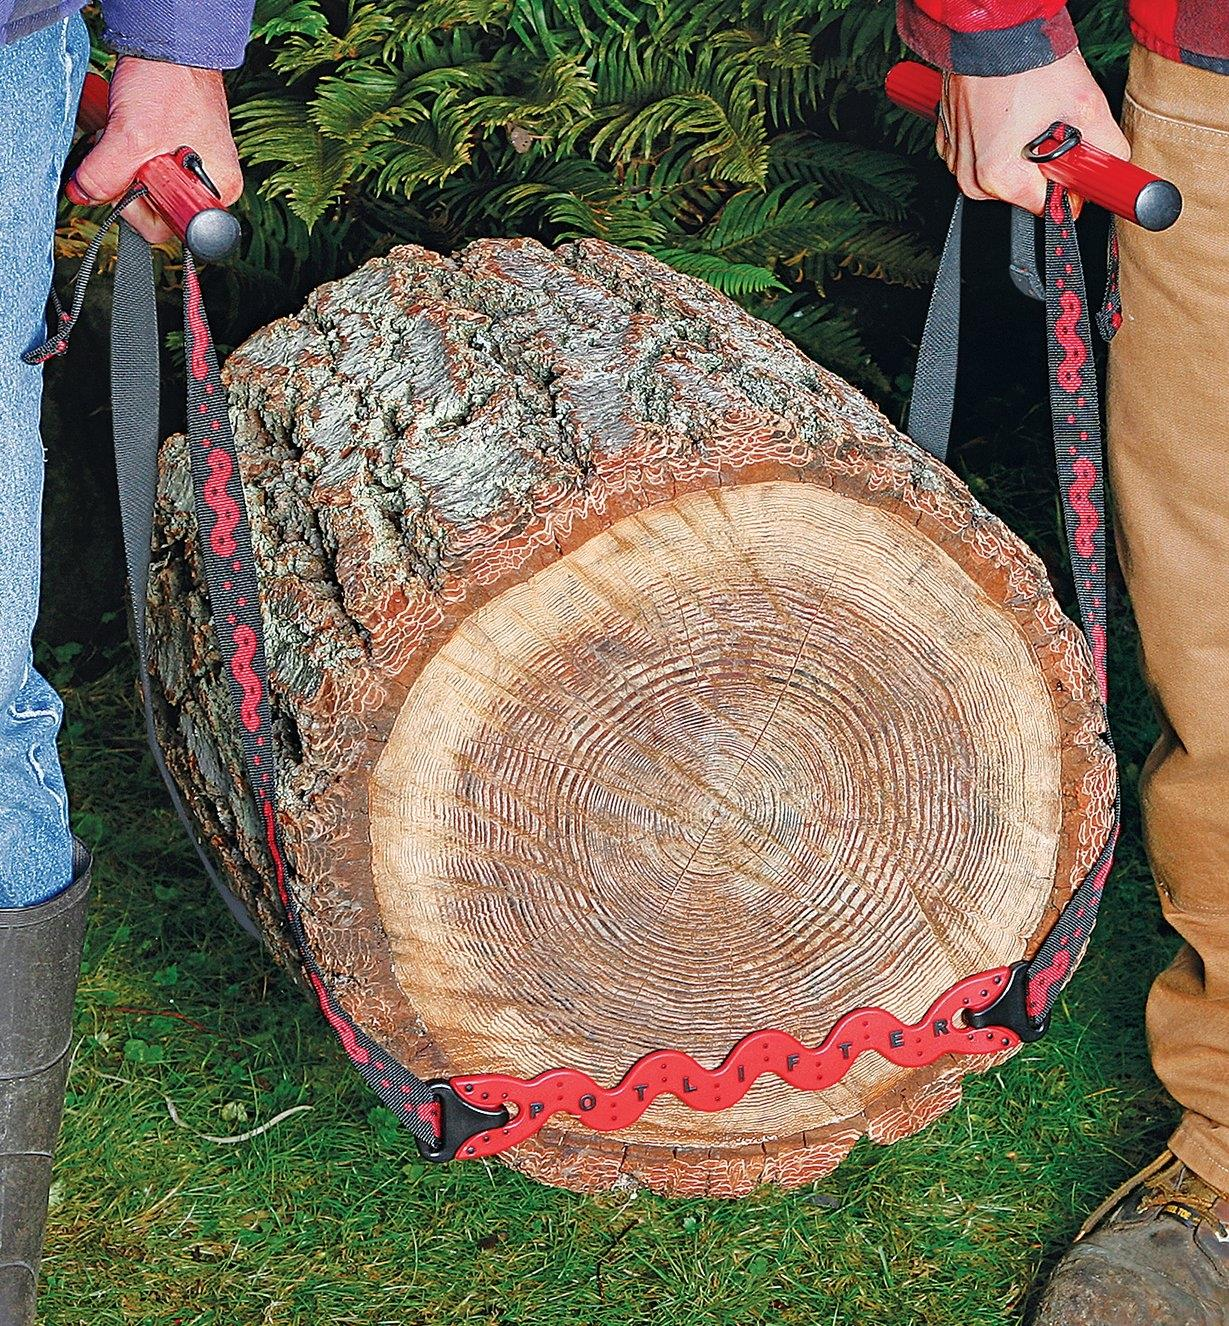 Two people using the PotLifter to carry a large log